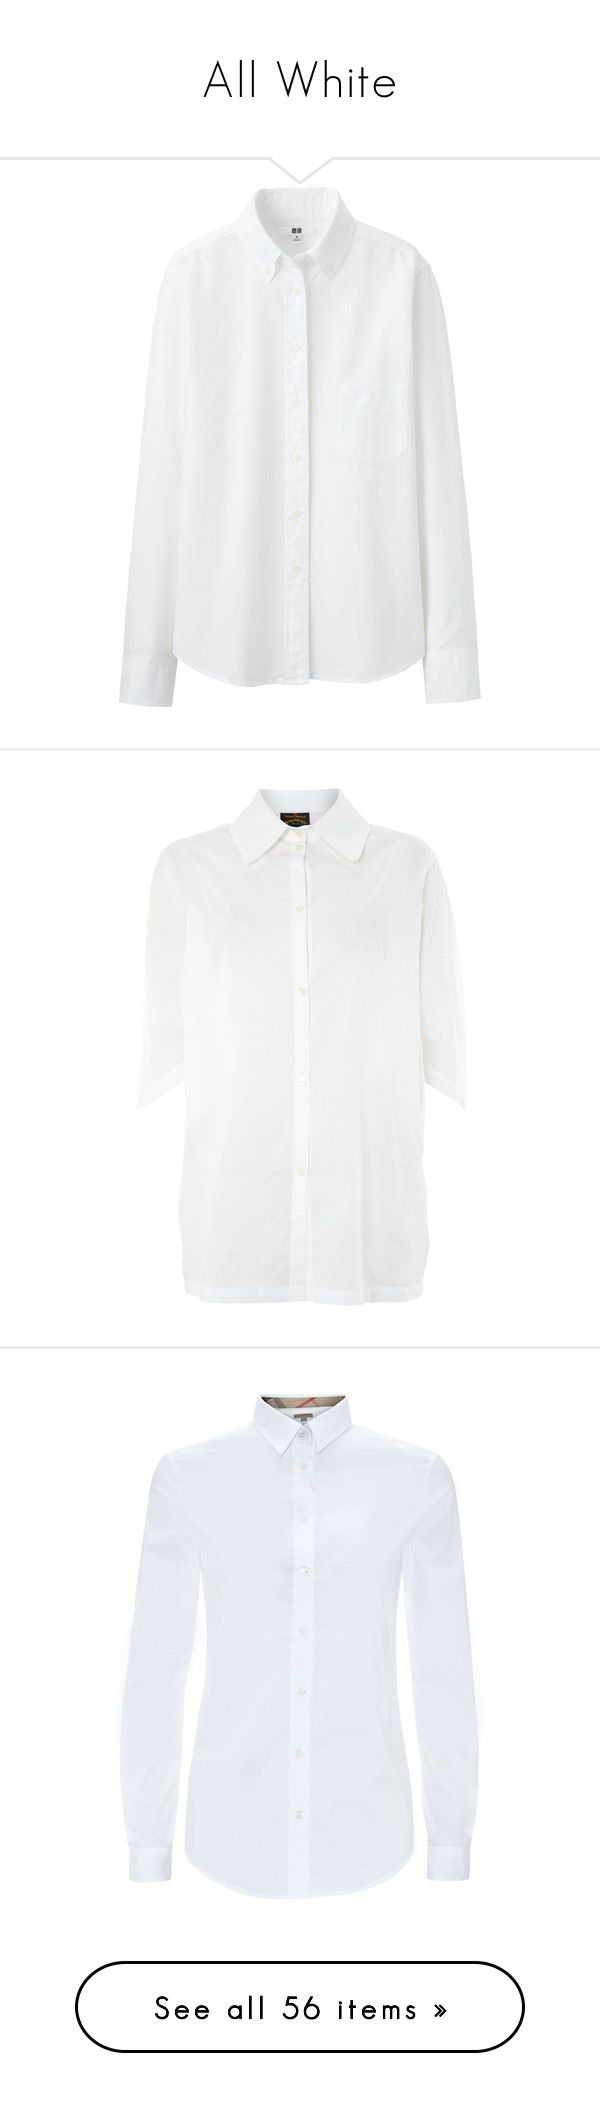 Best 25  White oxford shirts ideas on Pinterest | White women's ...